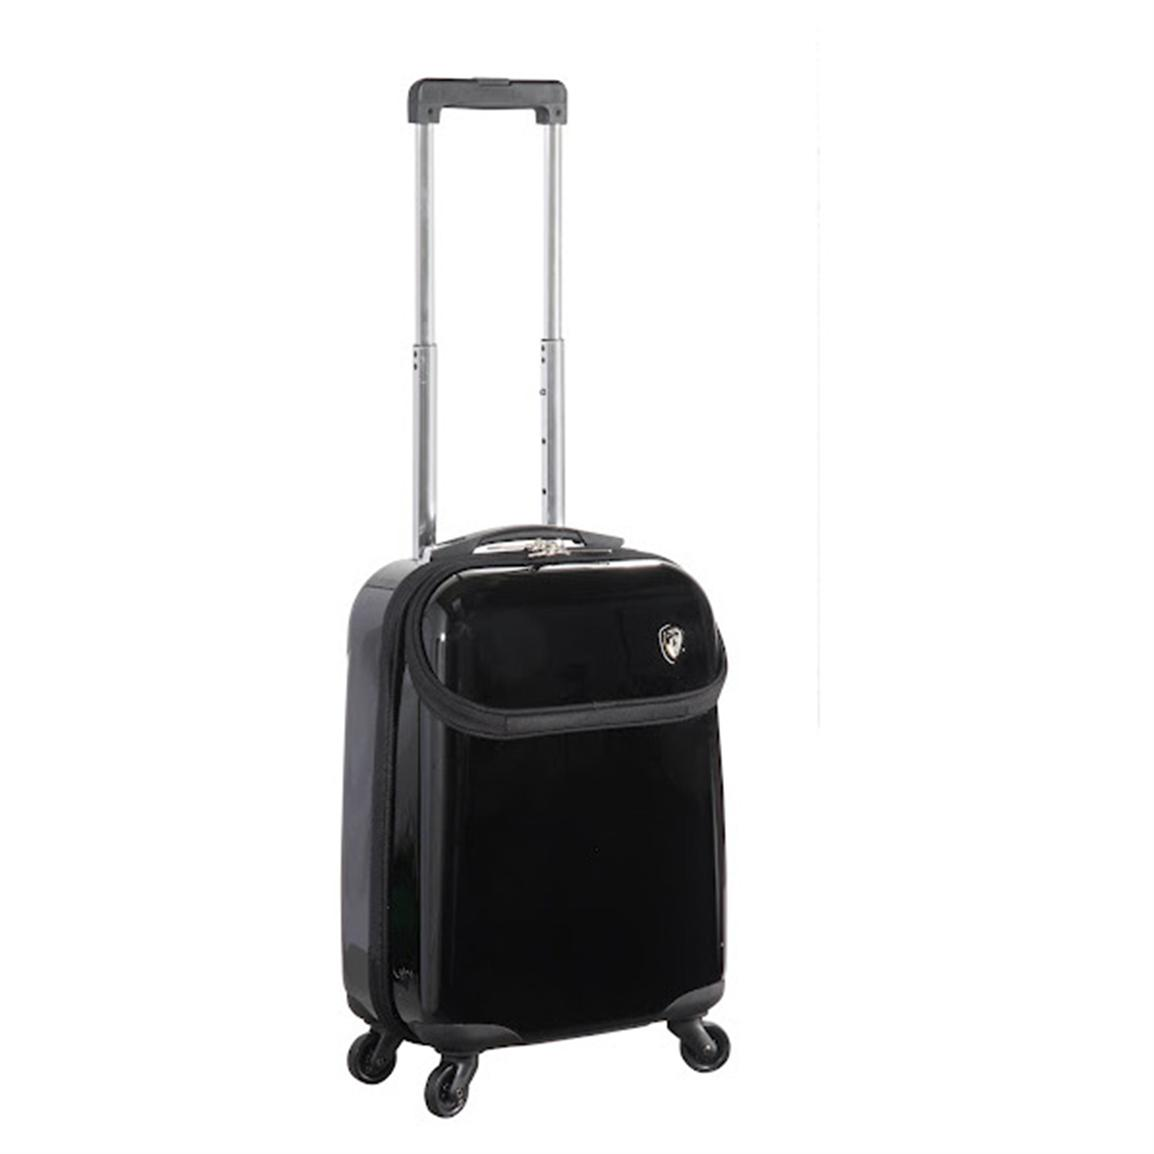 Heys USA® EZ Computer Case 21 inch Carry-On Case, Black